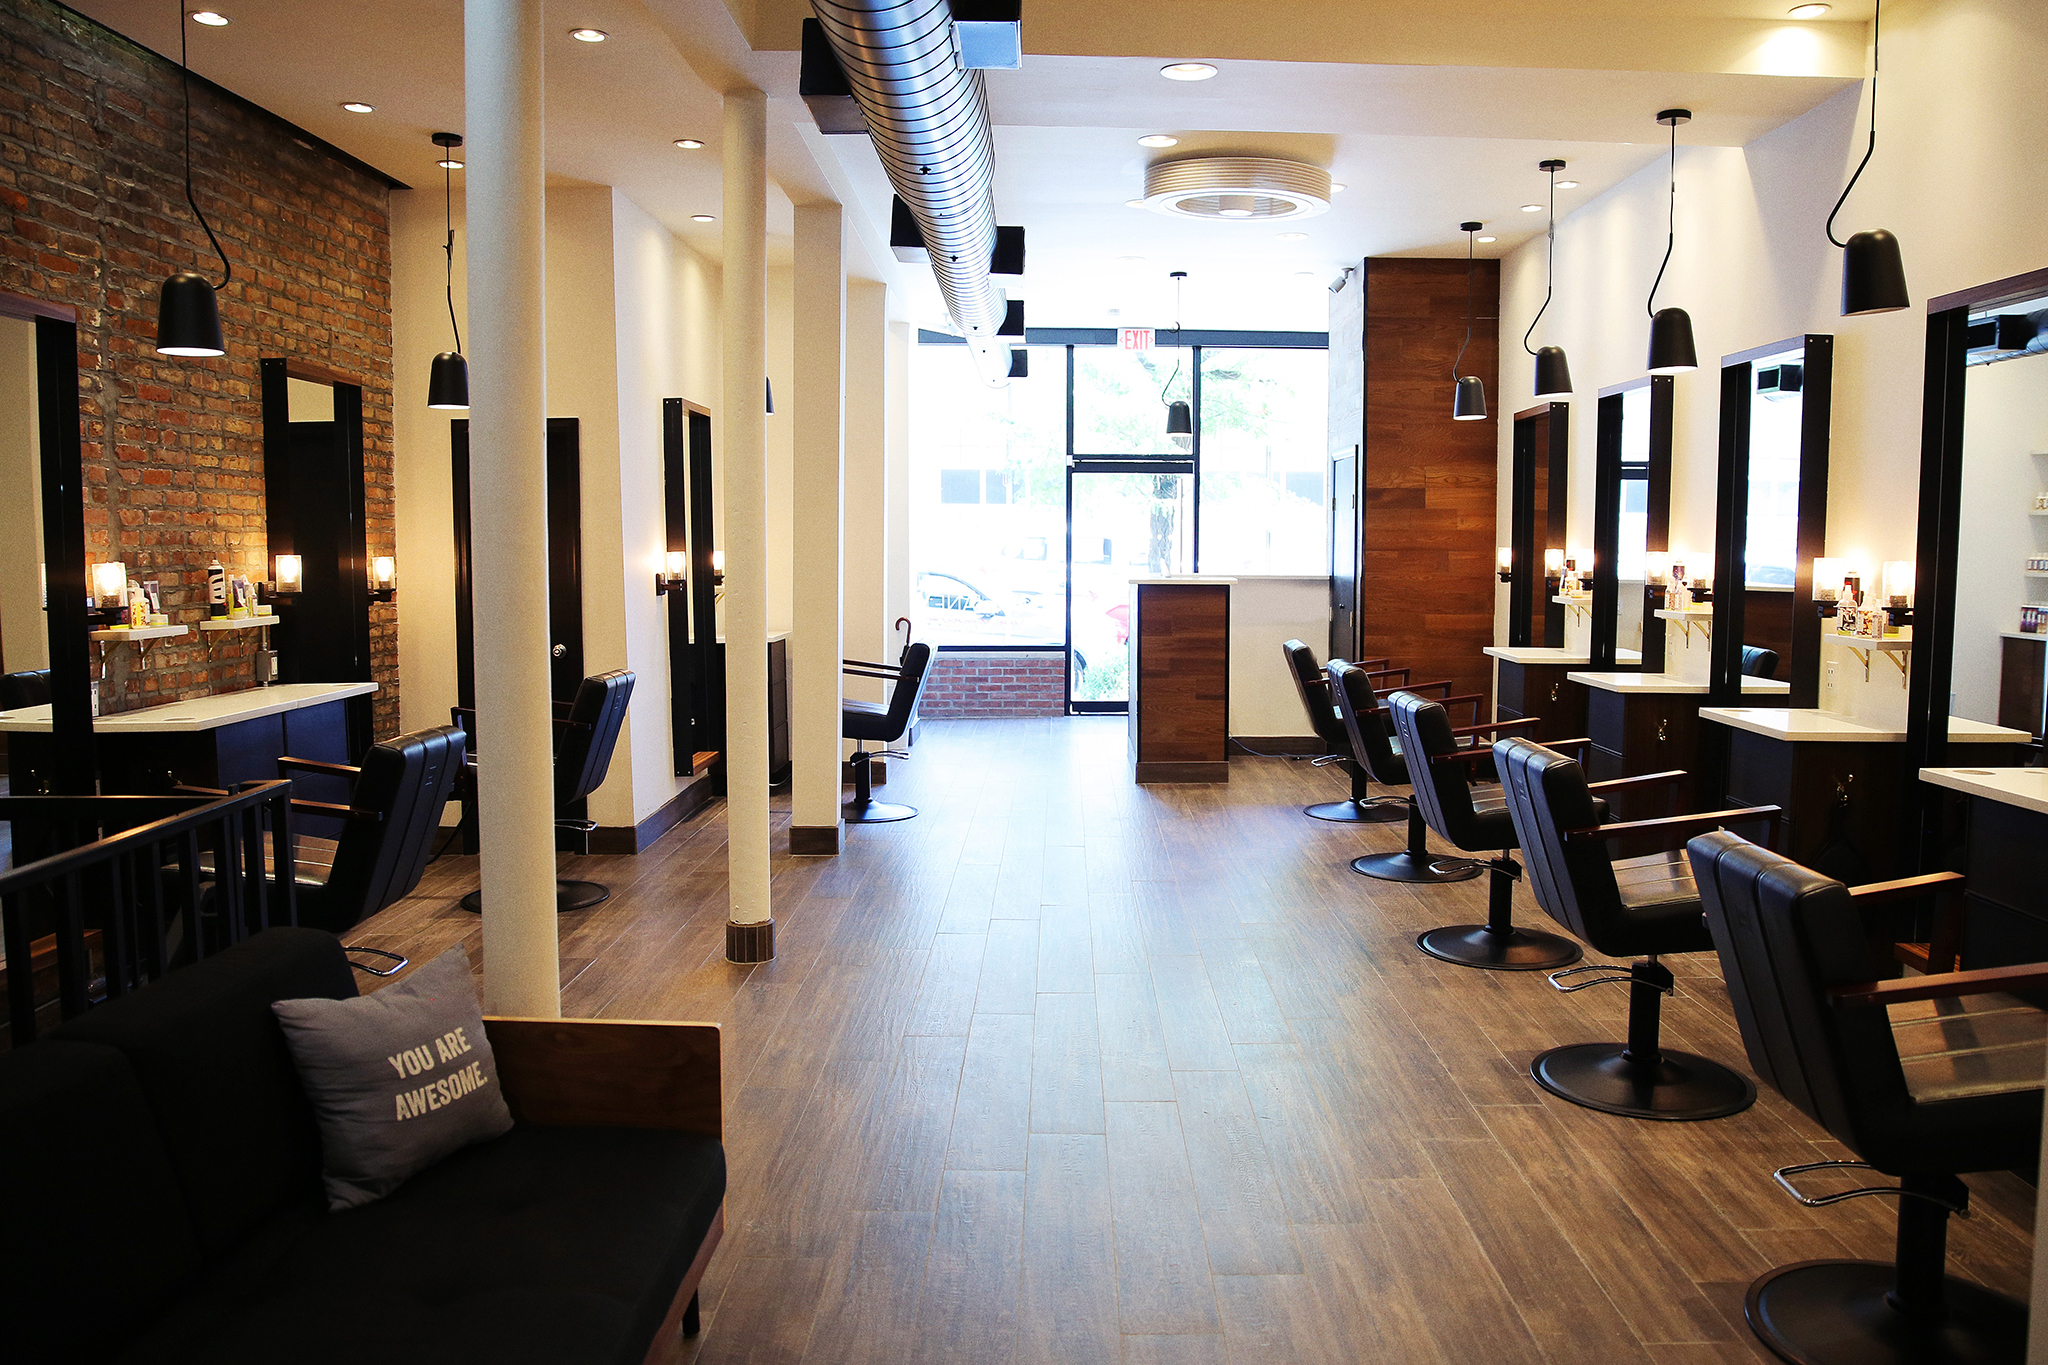 Arte Salon And Spa Best Hair Salons Nyc Has To Offer For Cuts And Color Treatments